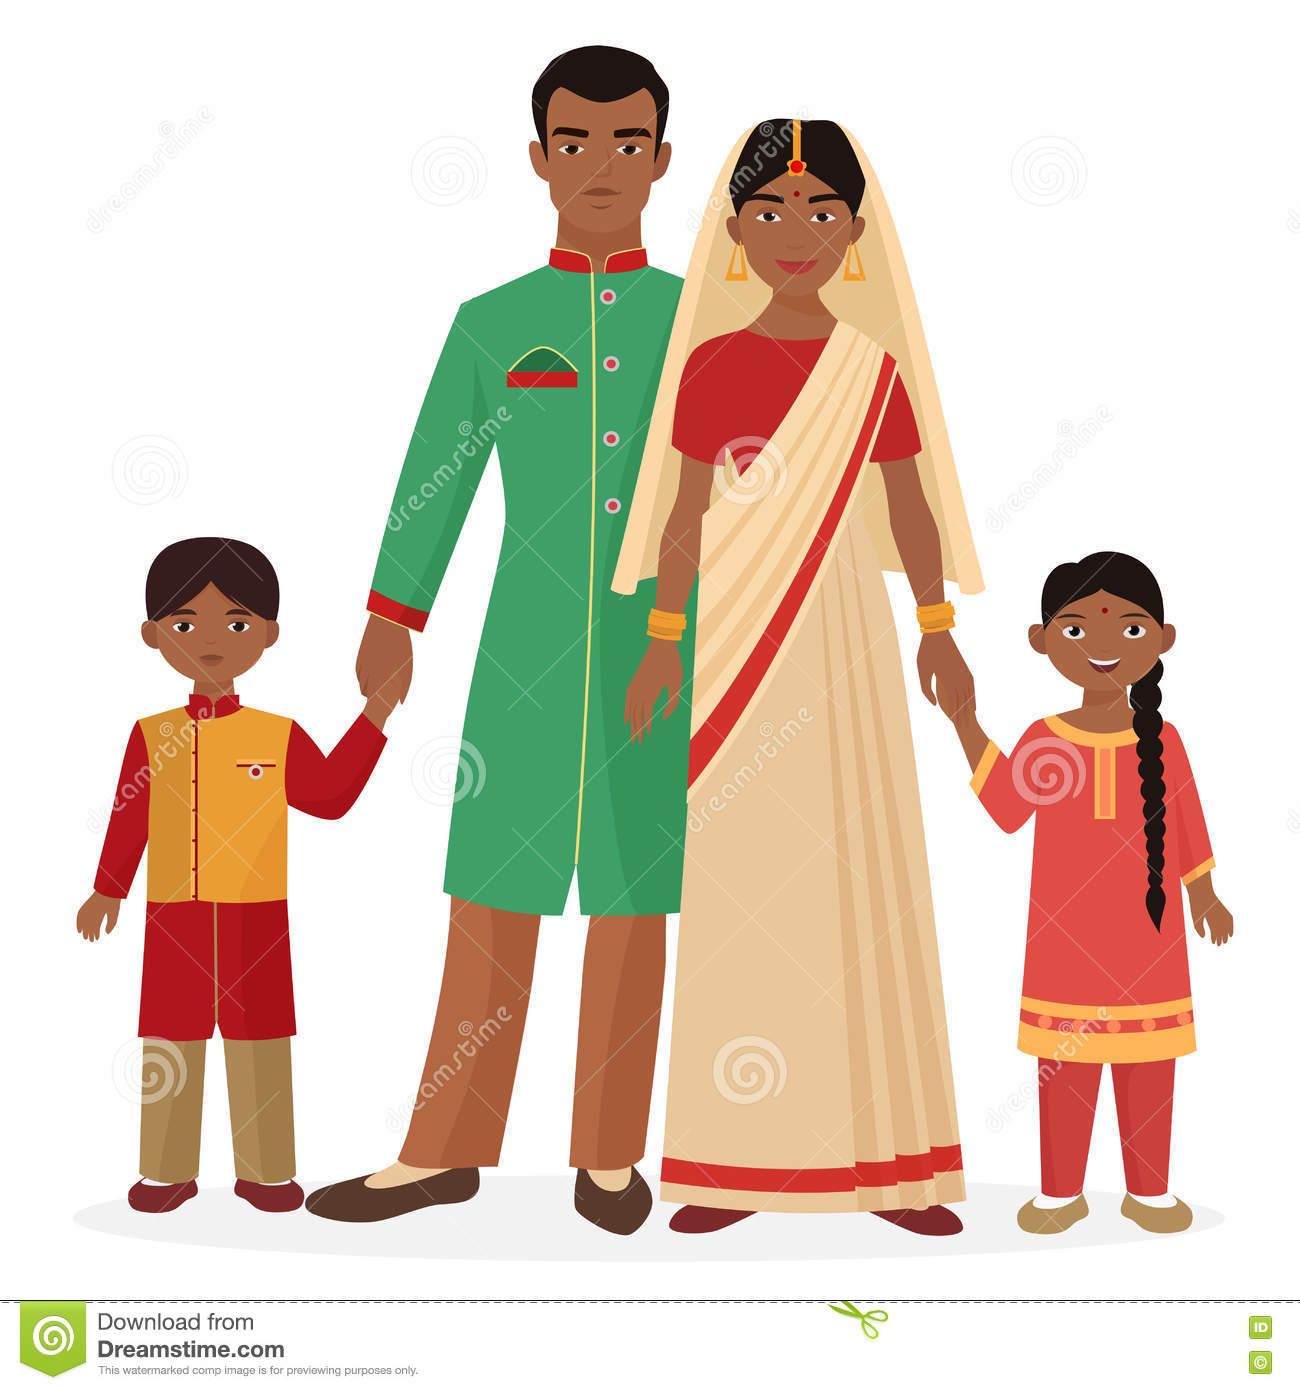 Indian dress clipart for kids.